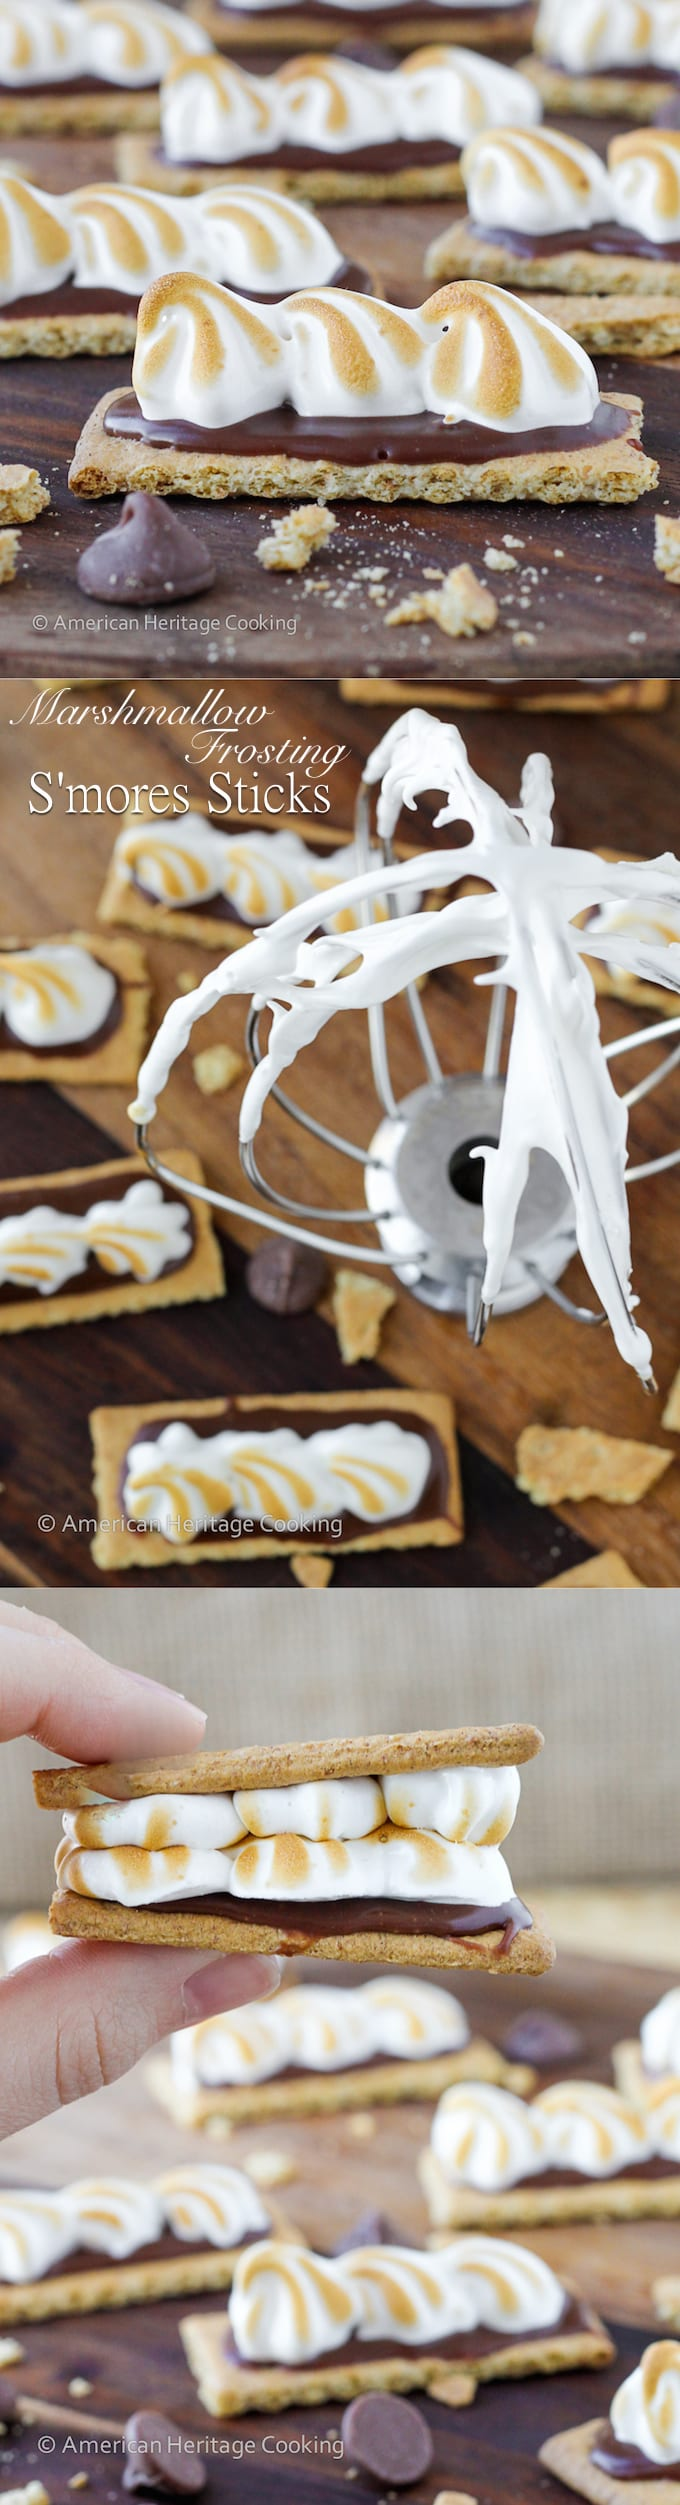 Homemade Marshmallow Frosting Smores Sticks   An easy, gelatin-free, recipe for marshmallow frosting and adorable, bite-sized S'mores snacks!